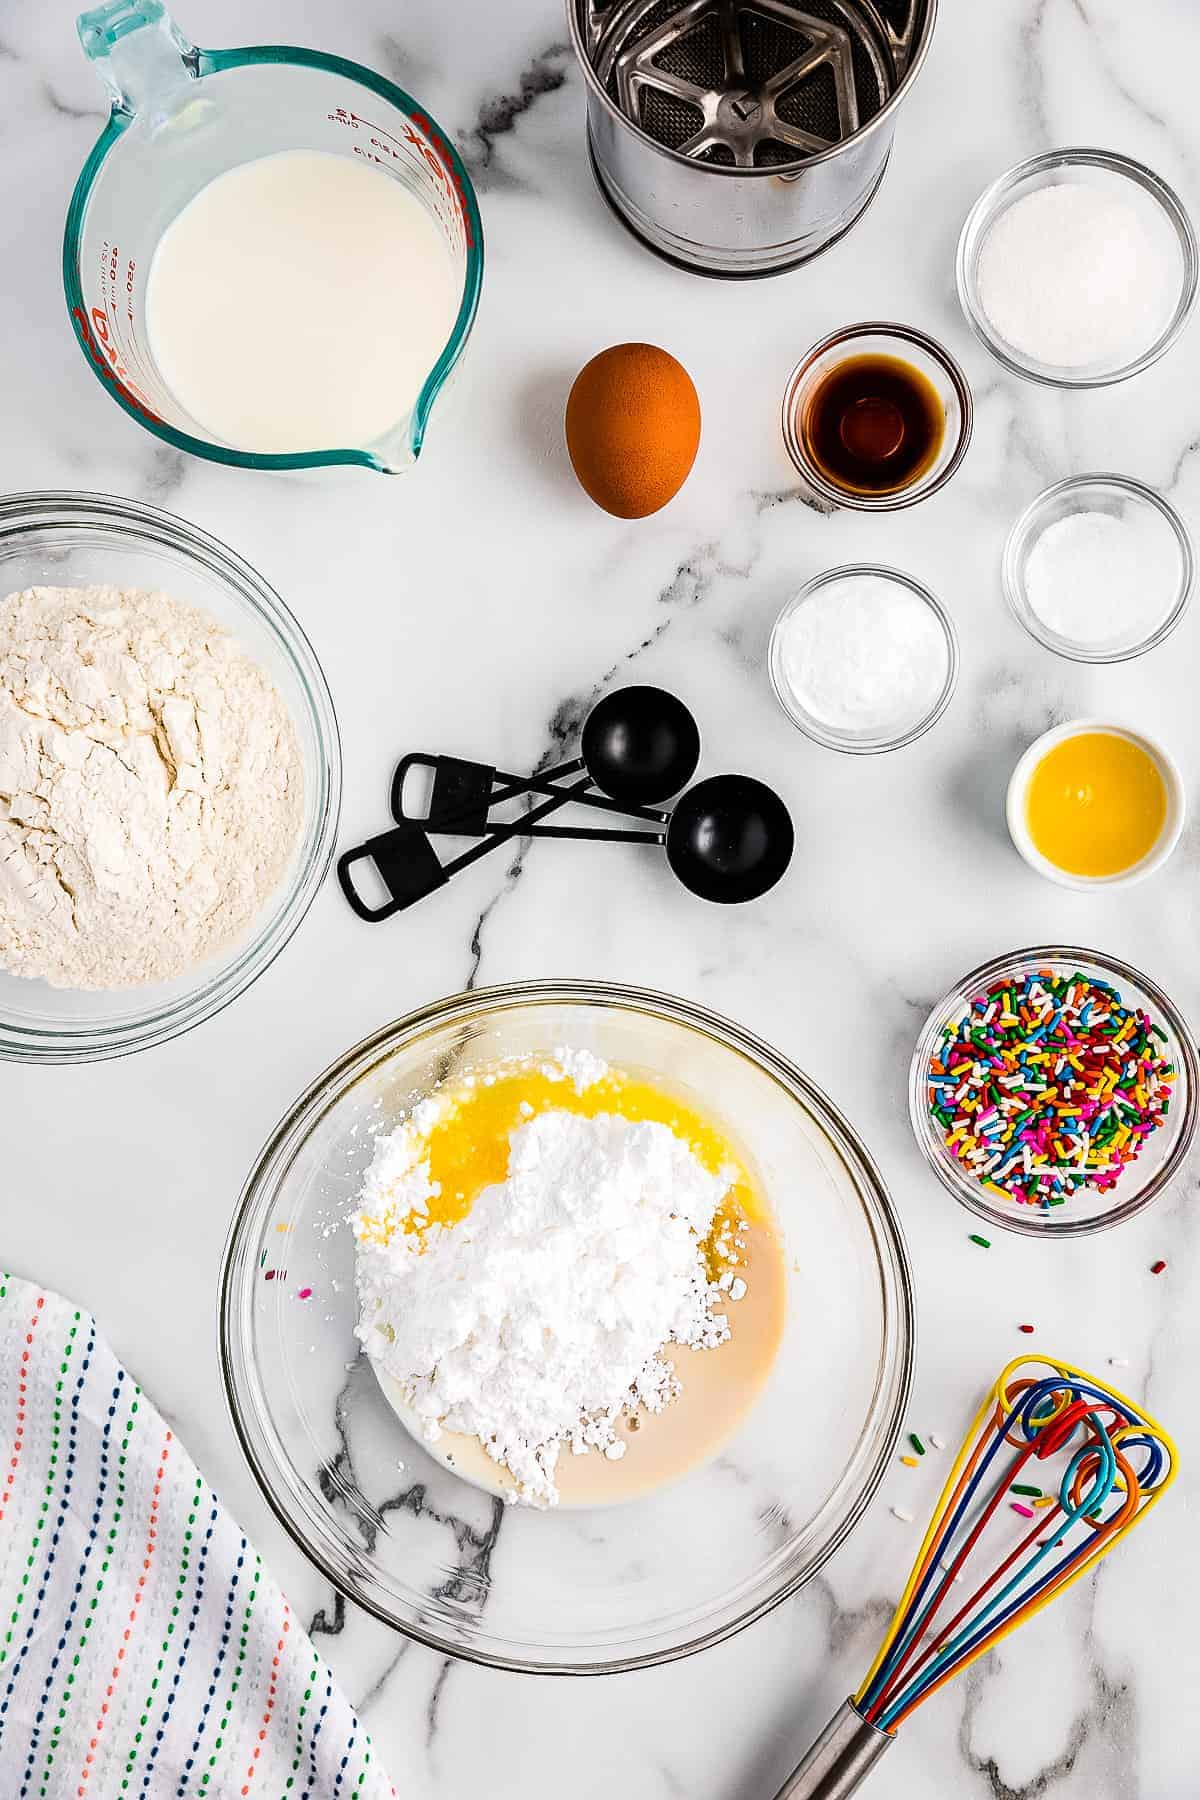 Ingredients in glass bowl to make frosting for funfetti pancakes